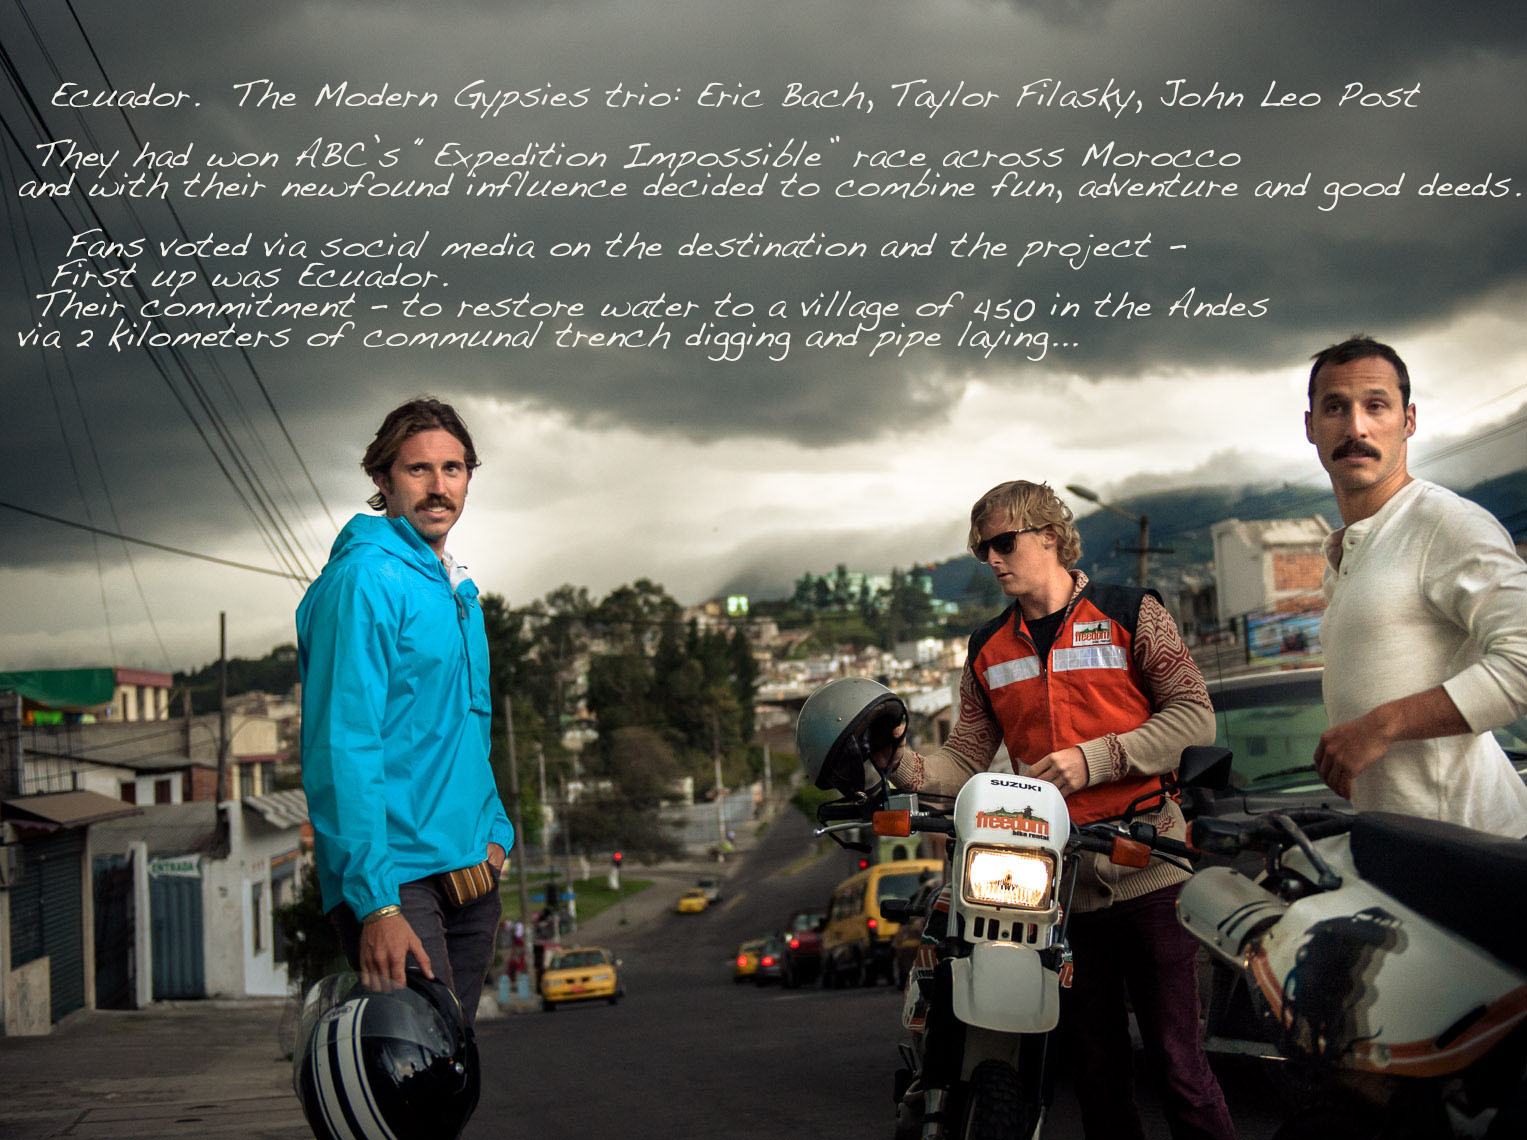 Kevin Steele - still from a documentary filmed in Ecuador